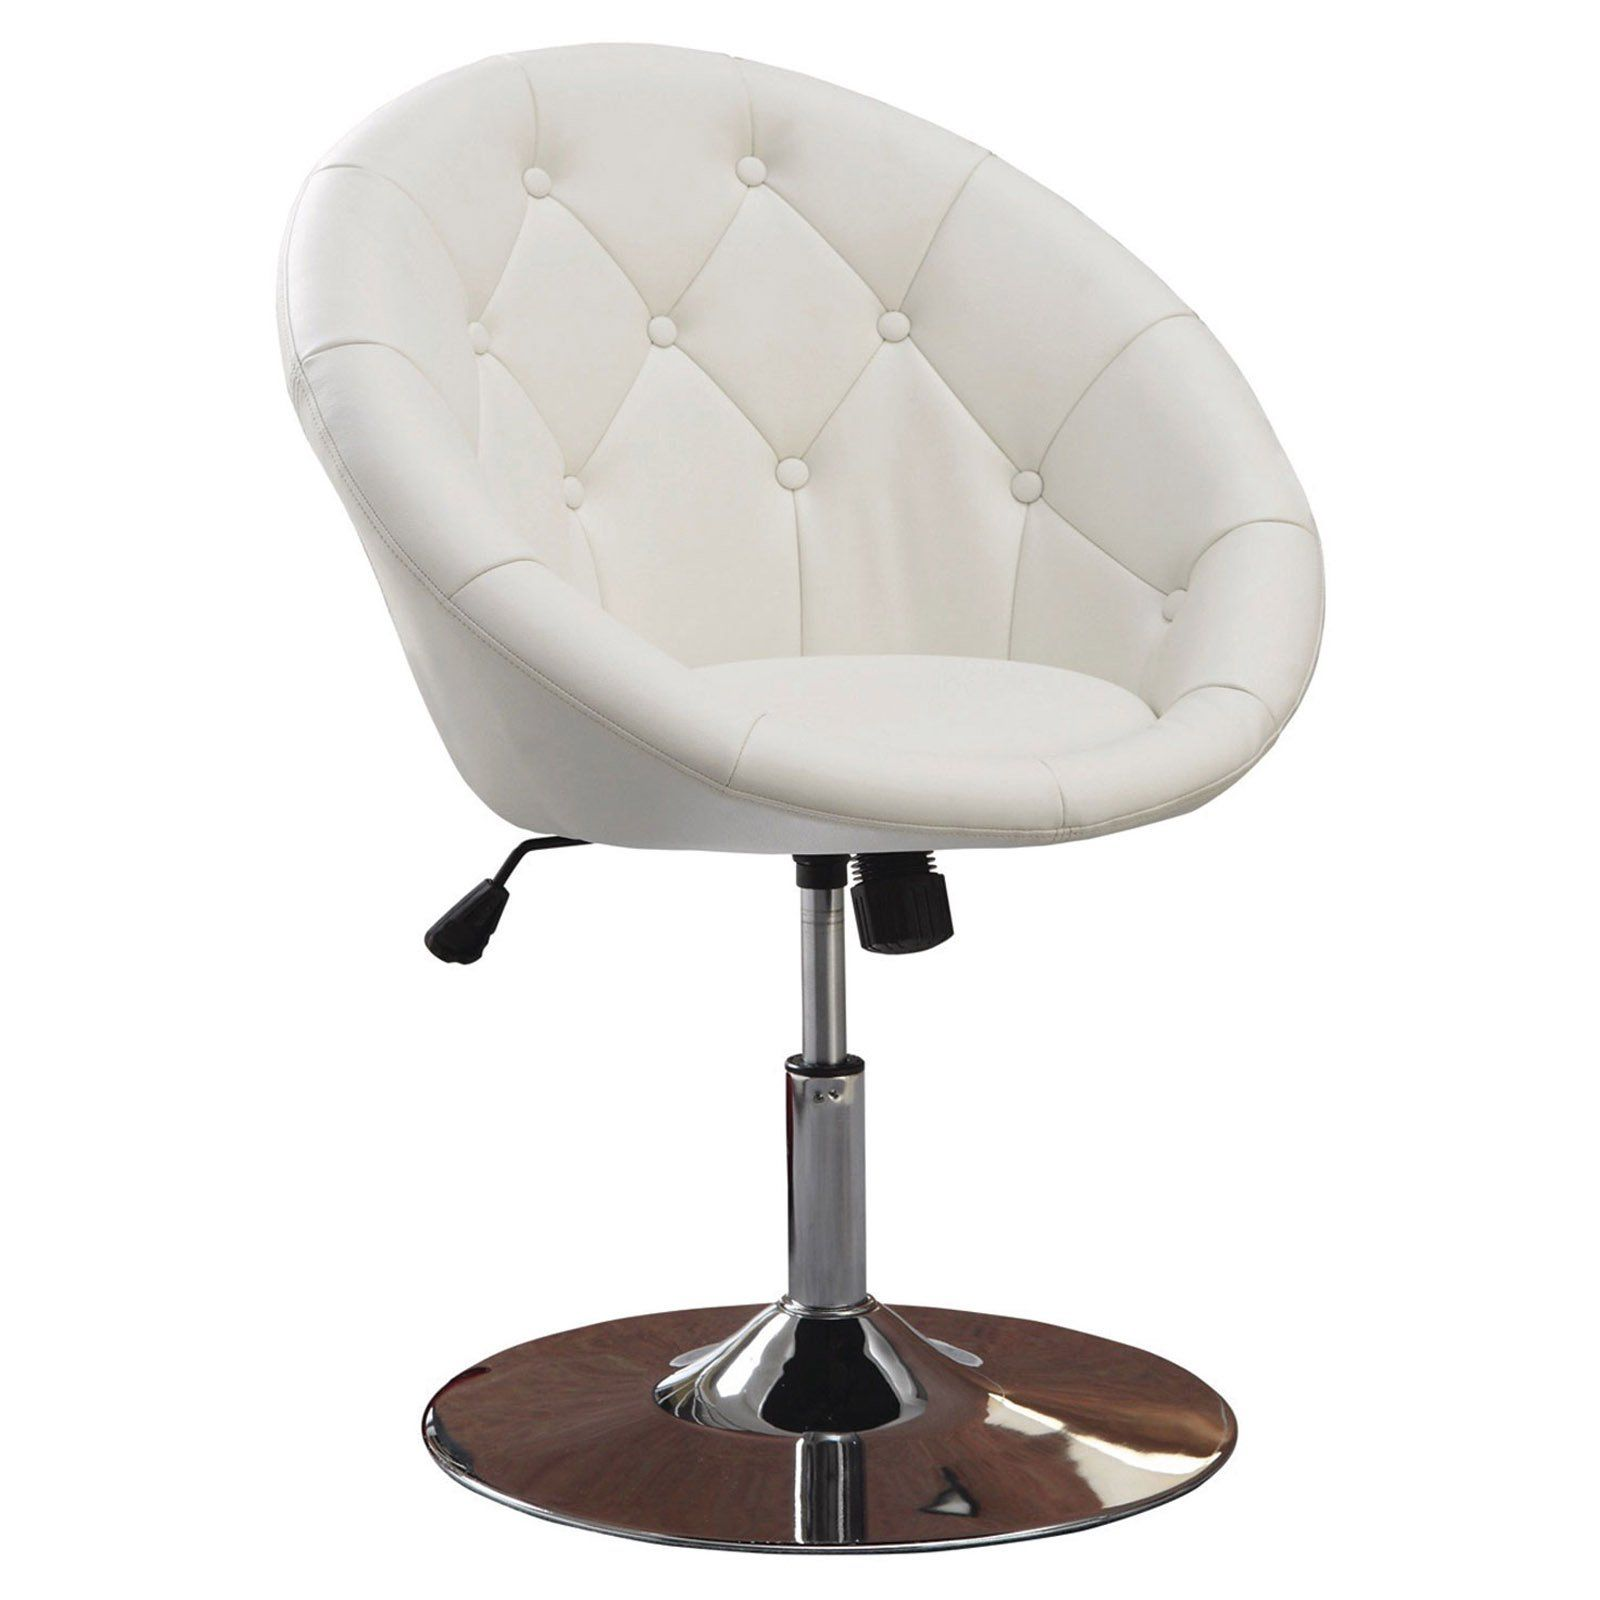 Coaster Furniture Agoura Armless Accent Chair White In